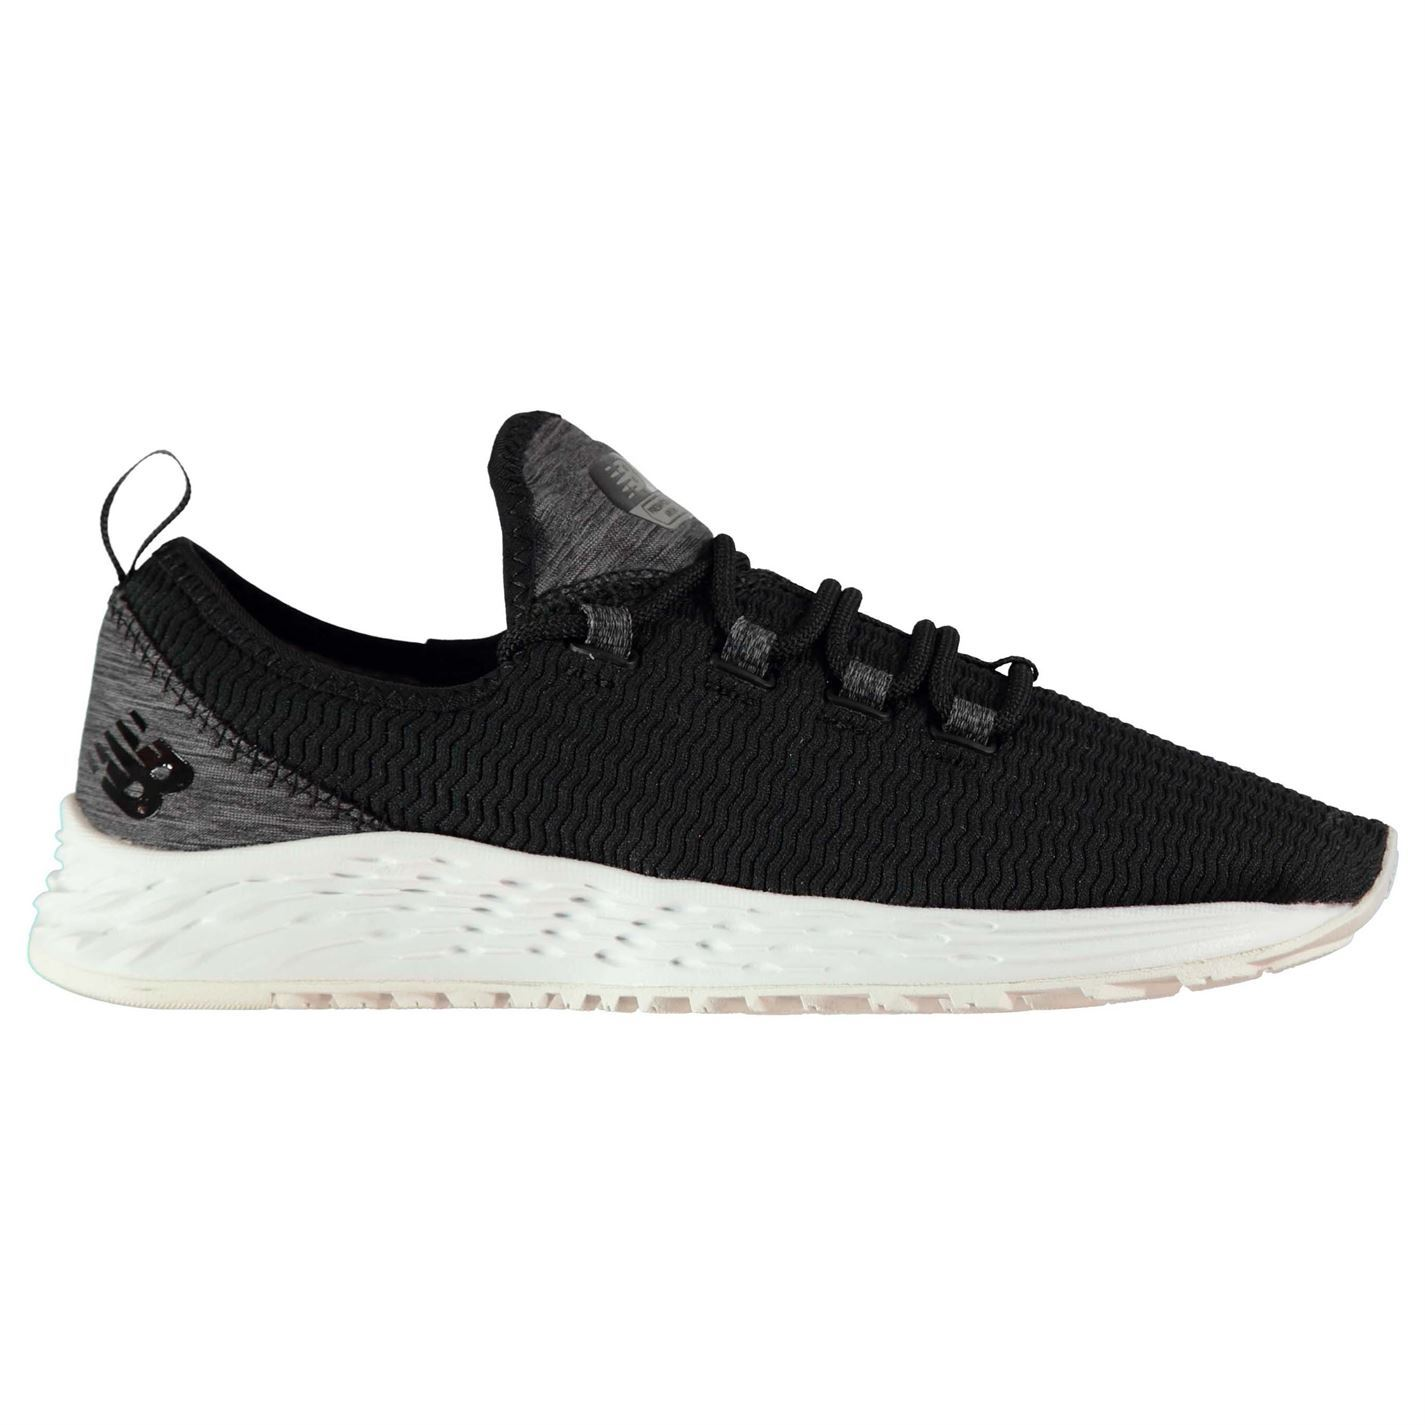 New Balance Womens Aria Knit Trainers Runners Lace Up Knit Aria Knitted 9e5b58